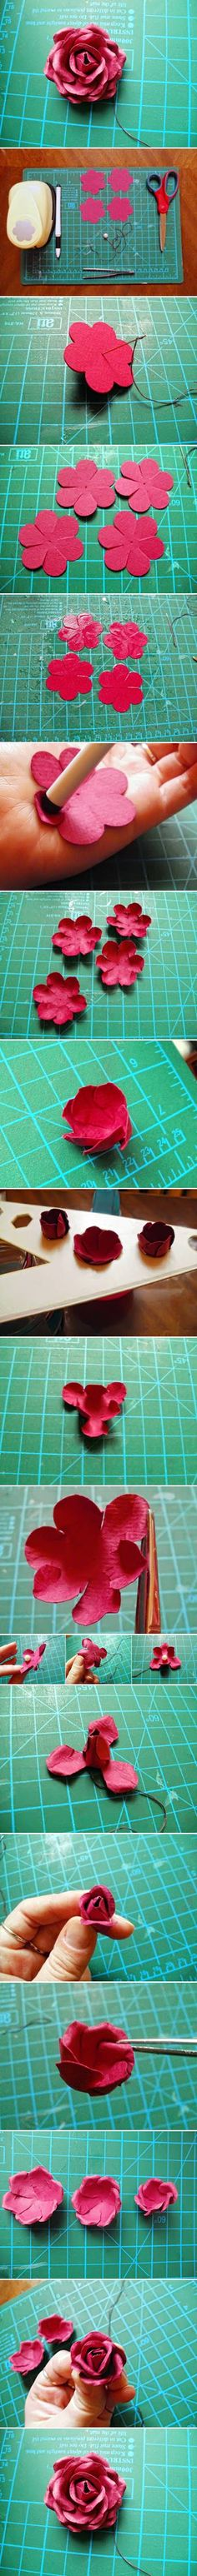 DIY Easy Modular Paper Rose